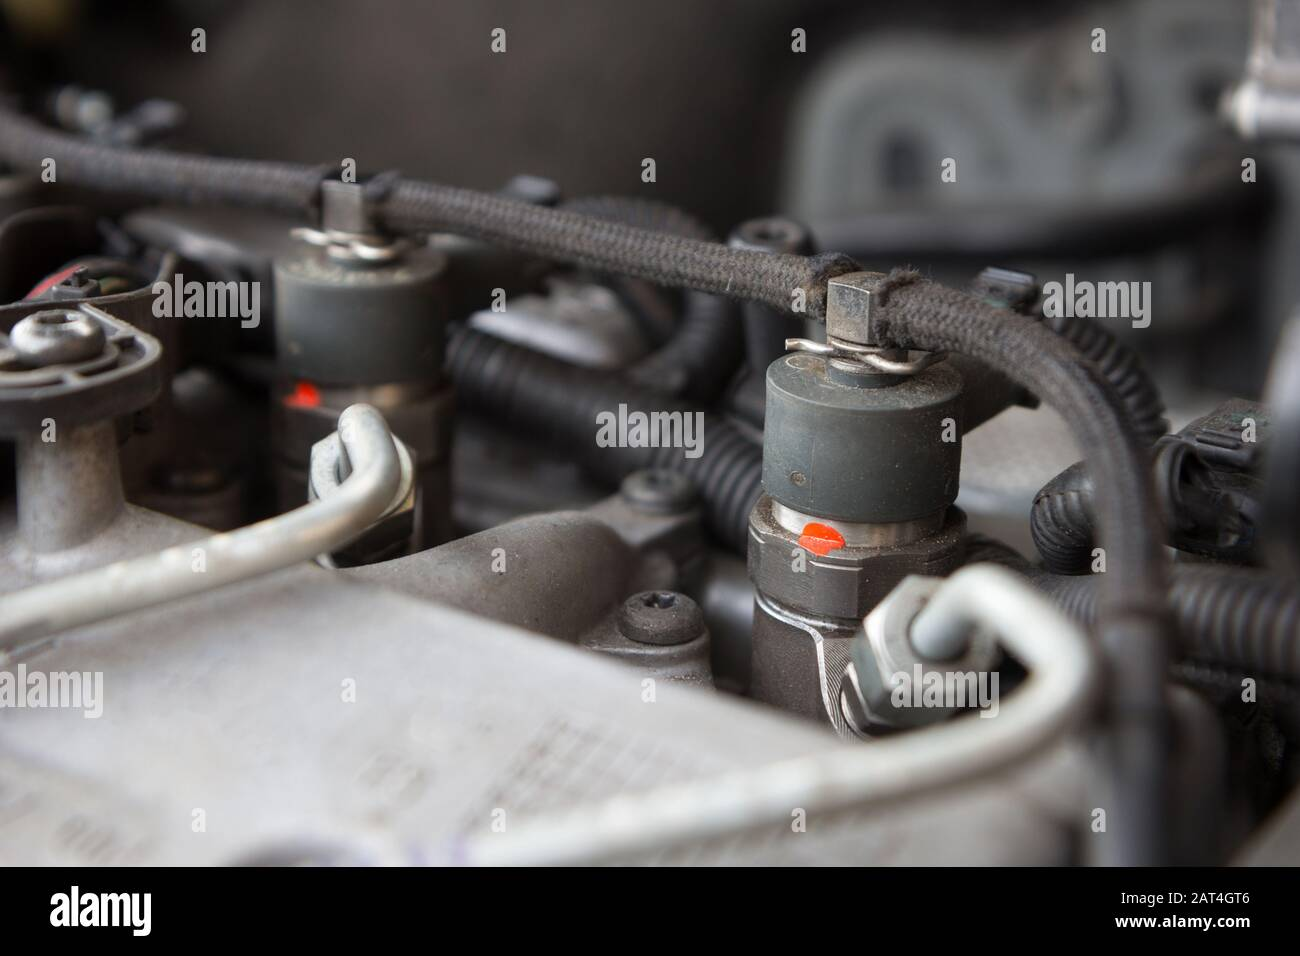 diesel engine fuel injection nozzle Stock Photo